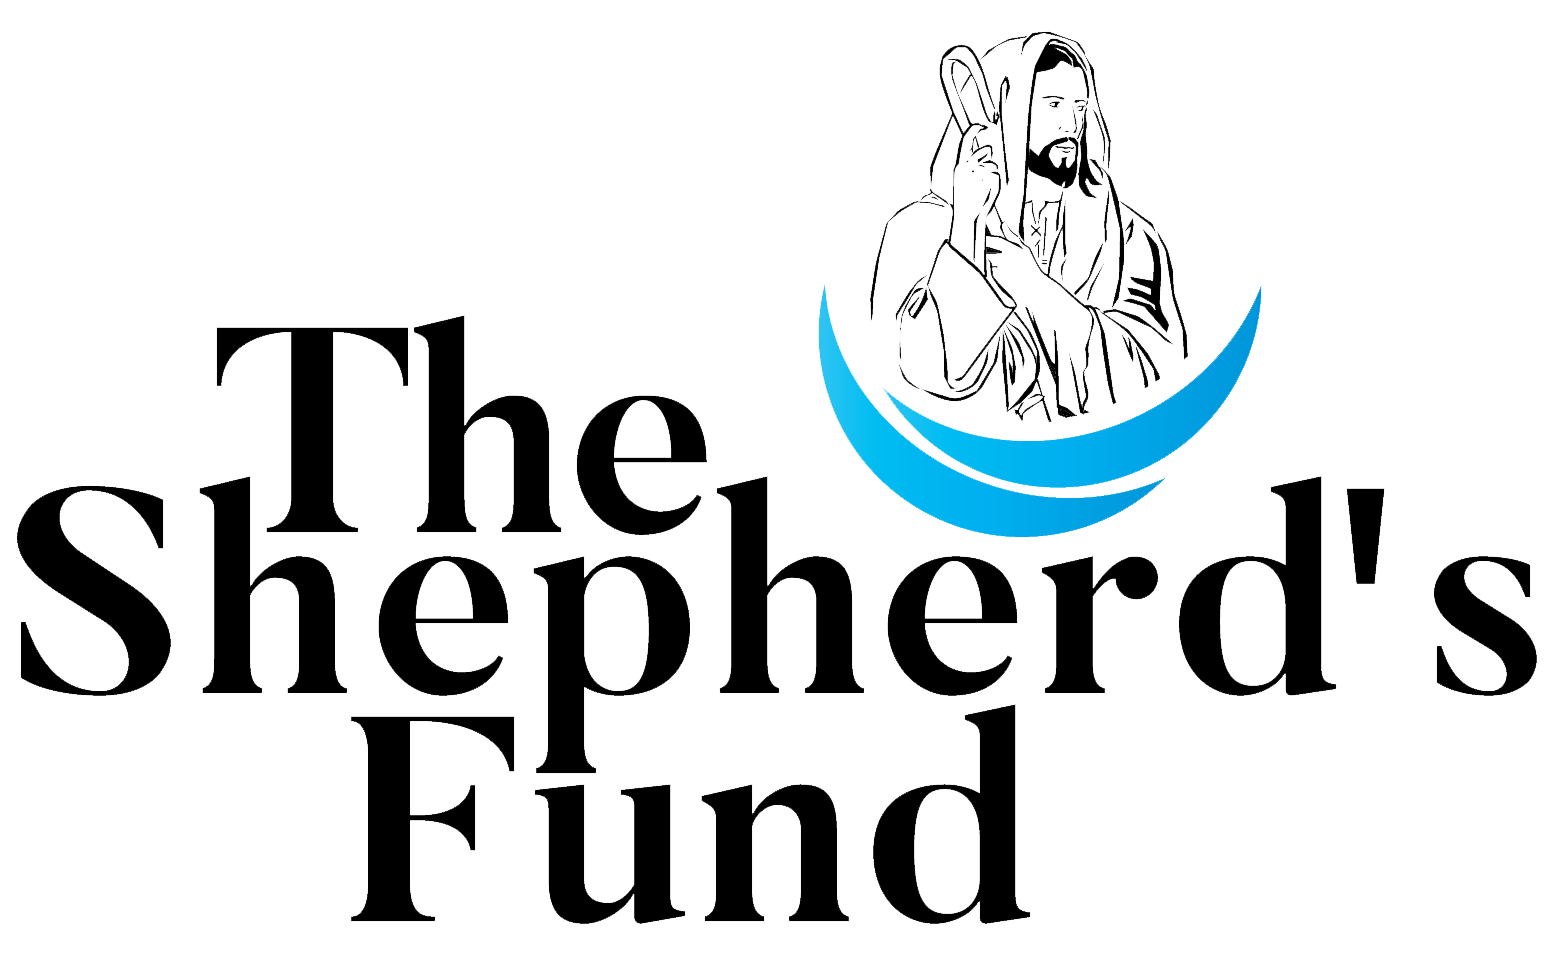 Shepherd's-Fund_Logo.png